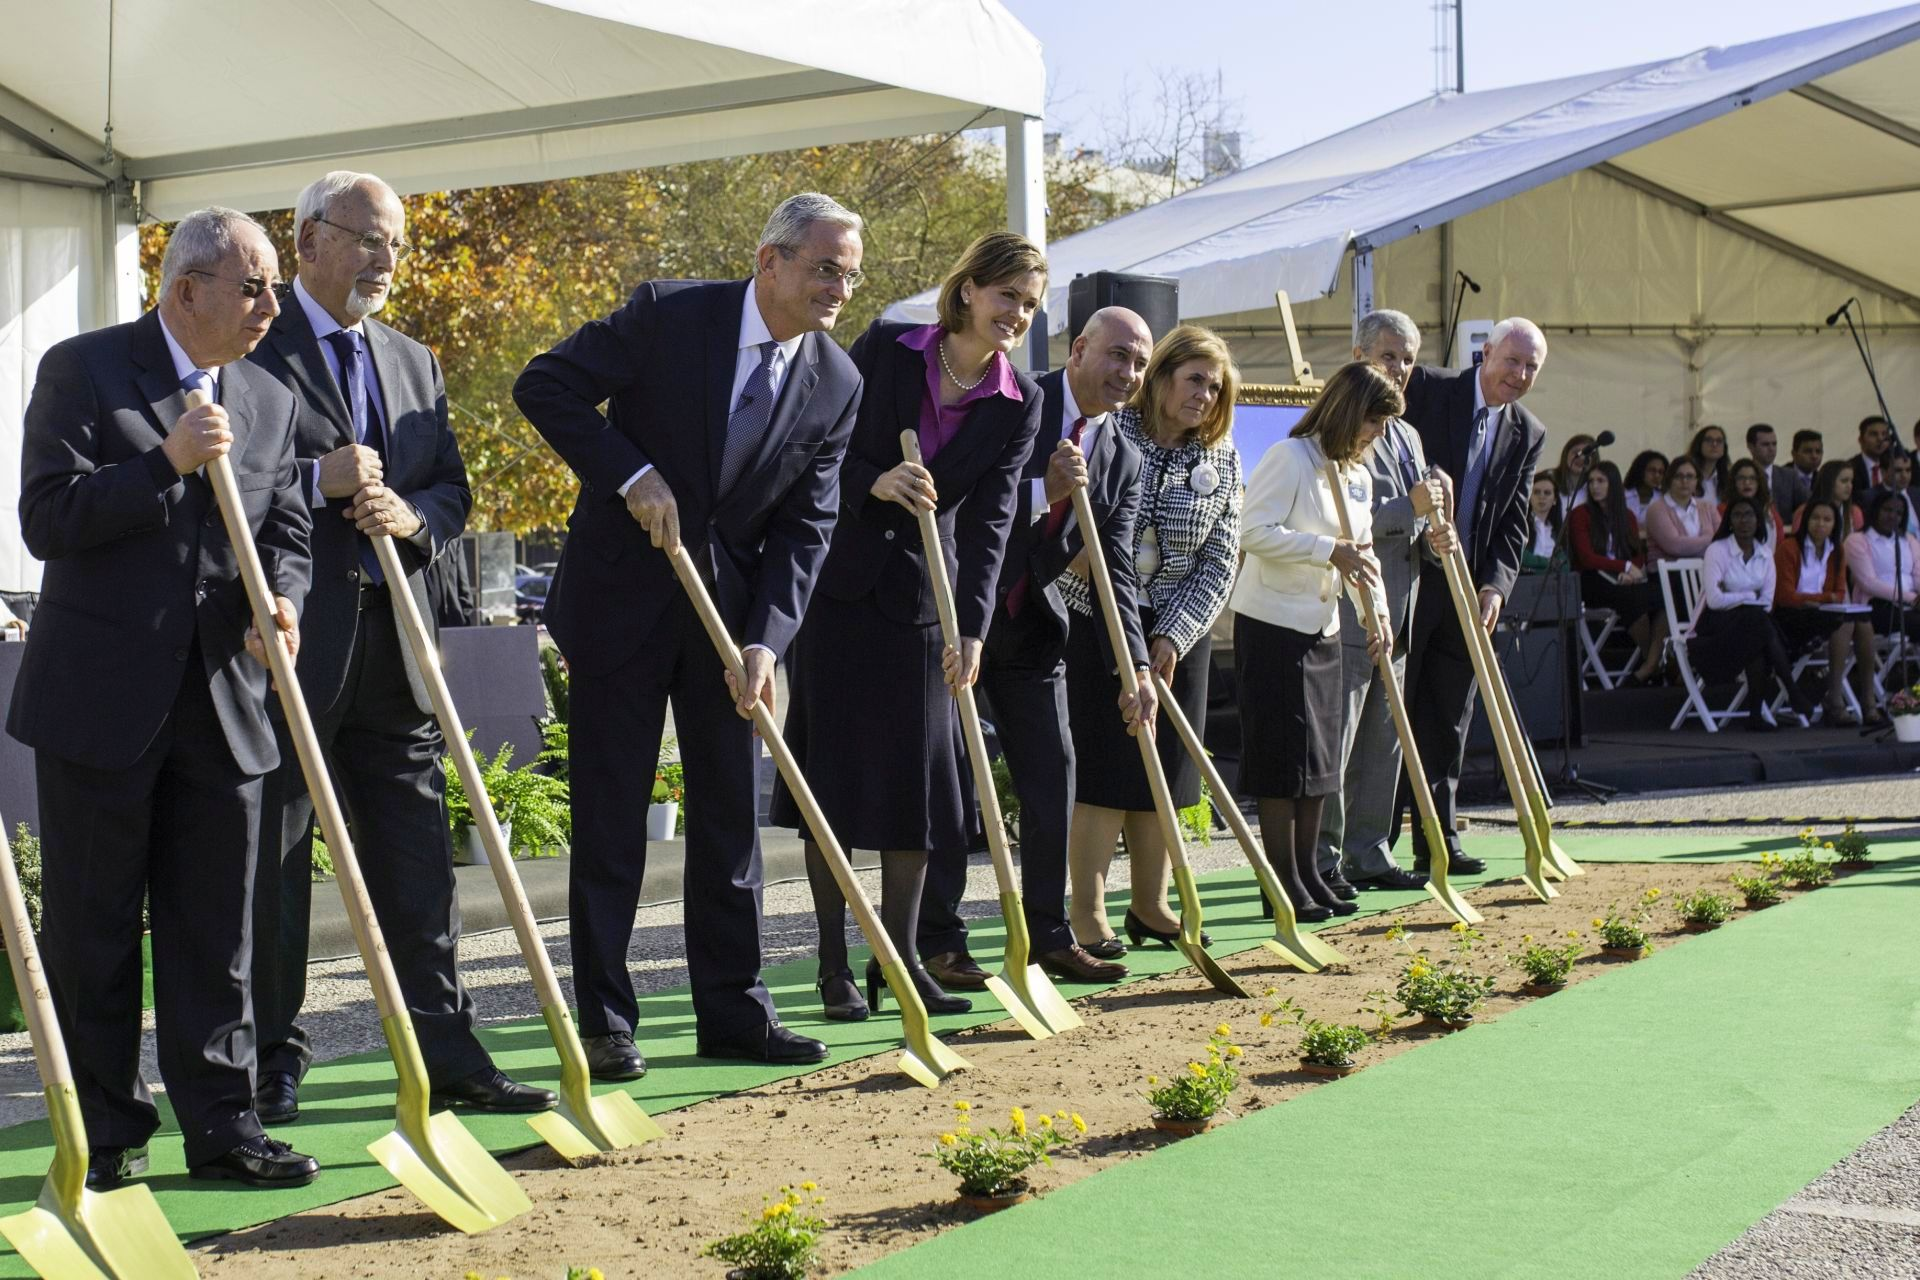 Europe Area President Elder Patrick Kearon and his wife, Sister Jennifer Kearon, break ground for the Lisbon Portugal temple with local civic leaders.